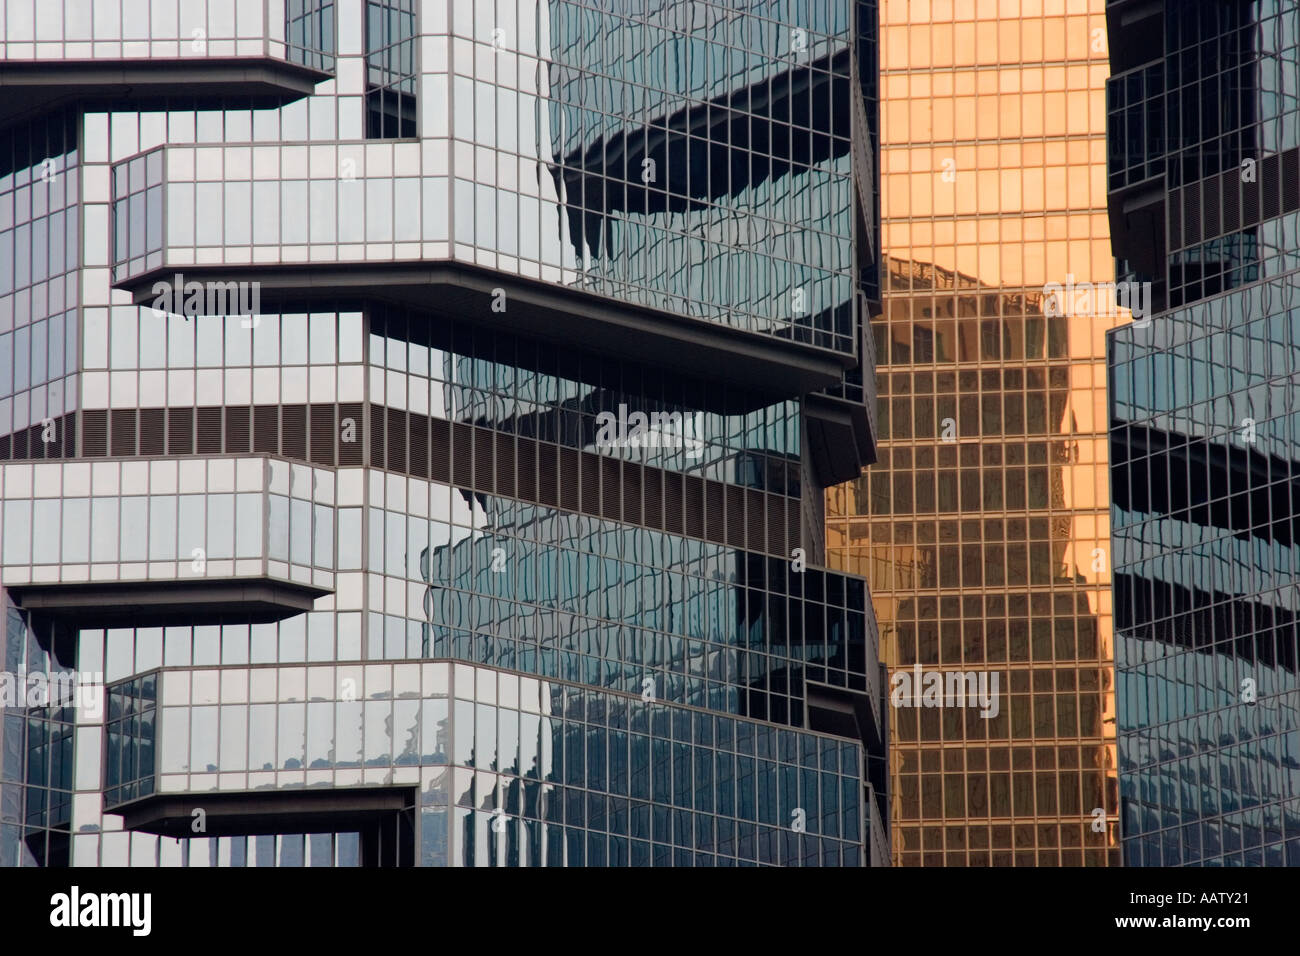 Detail of the Lippo Building in Hong Kong - Stock Image